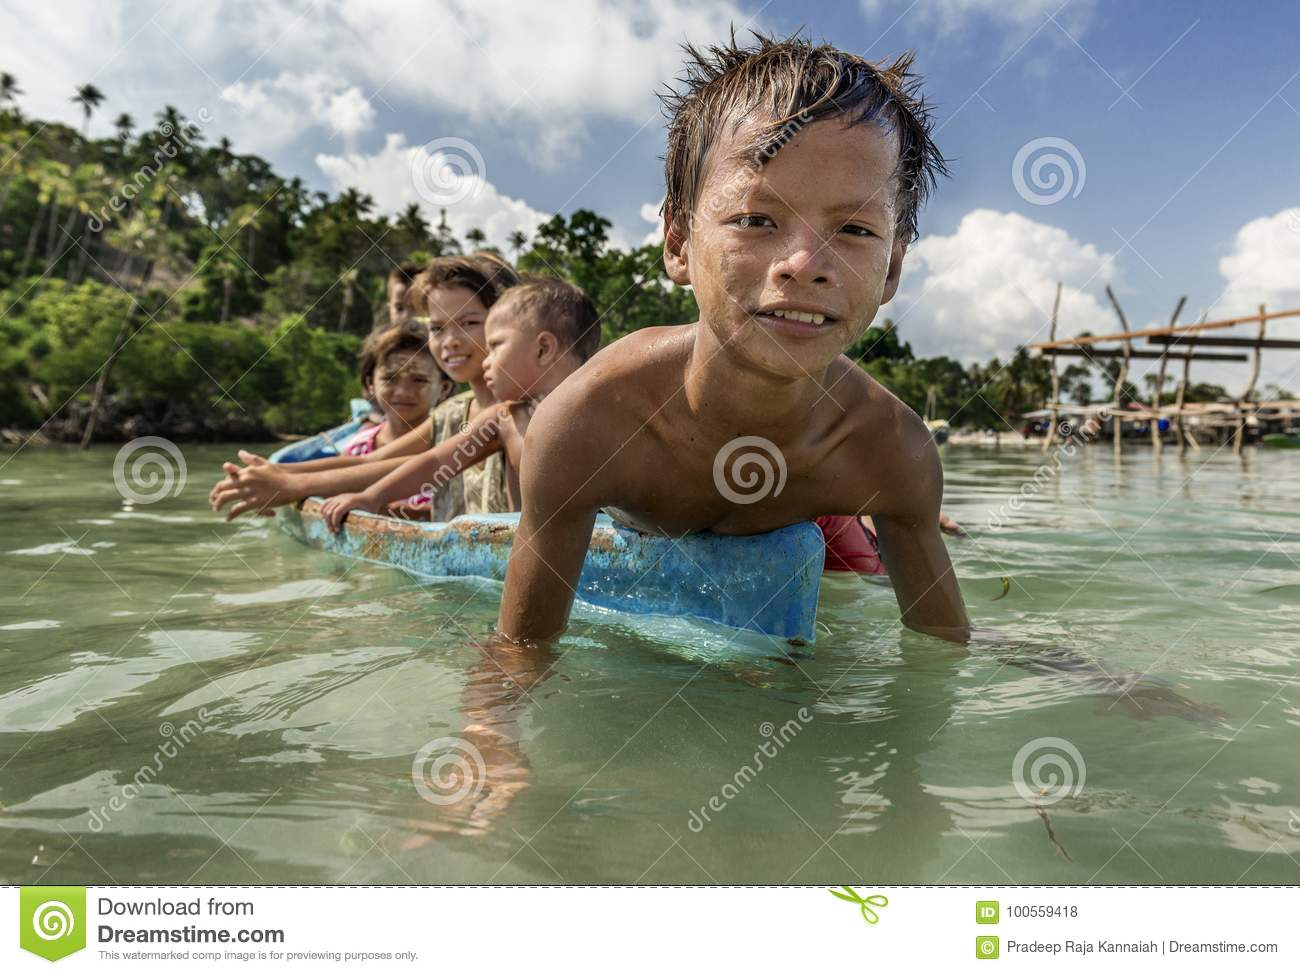 Bajau tribe kids having fun by rowing small boat near their village houses in Sea, Sabah Semporna, Malaysia